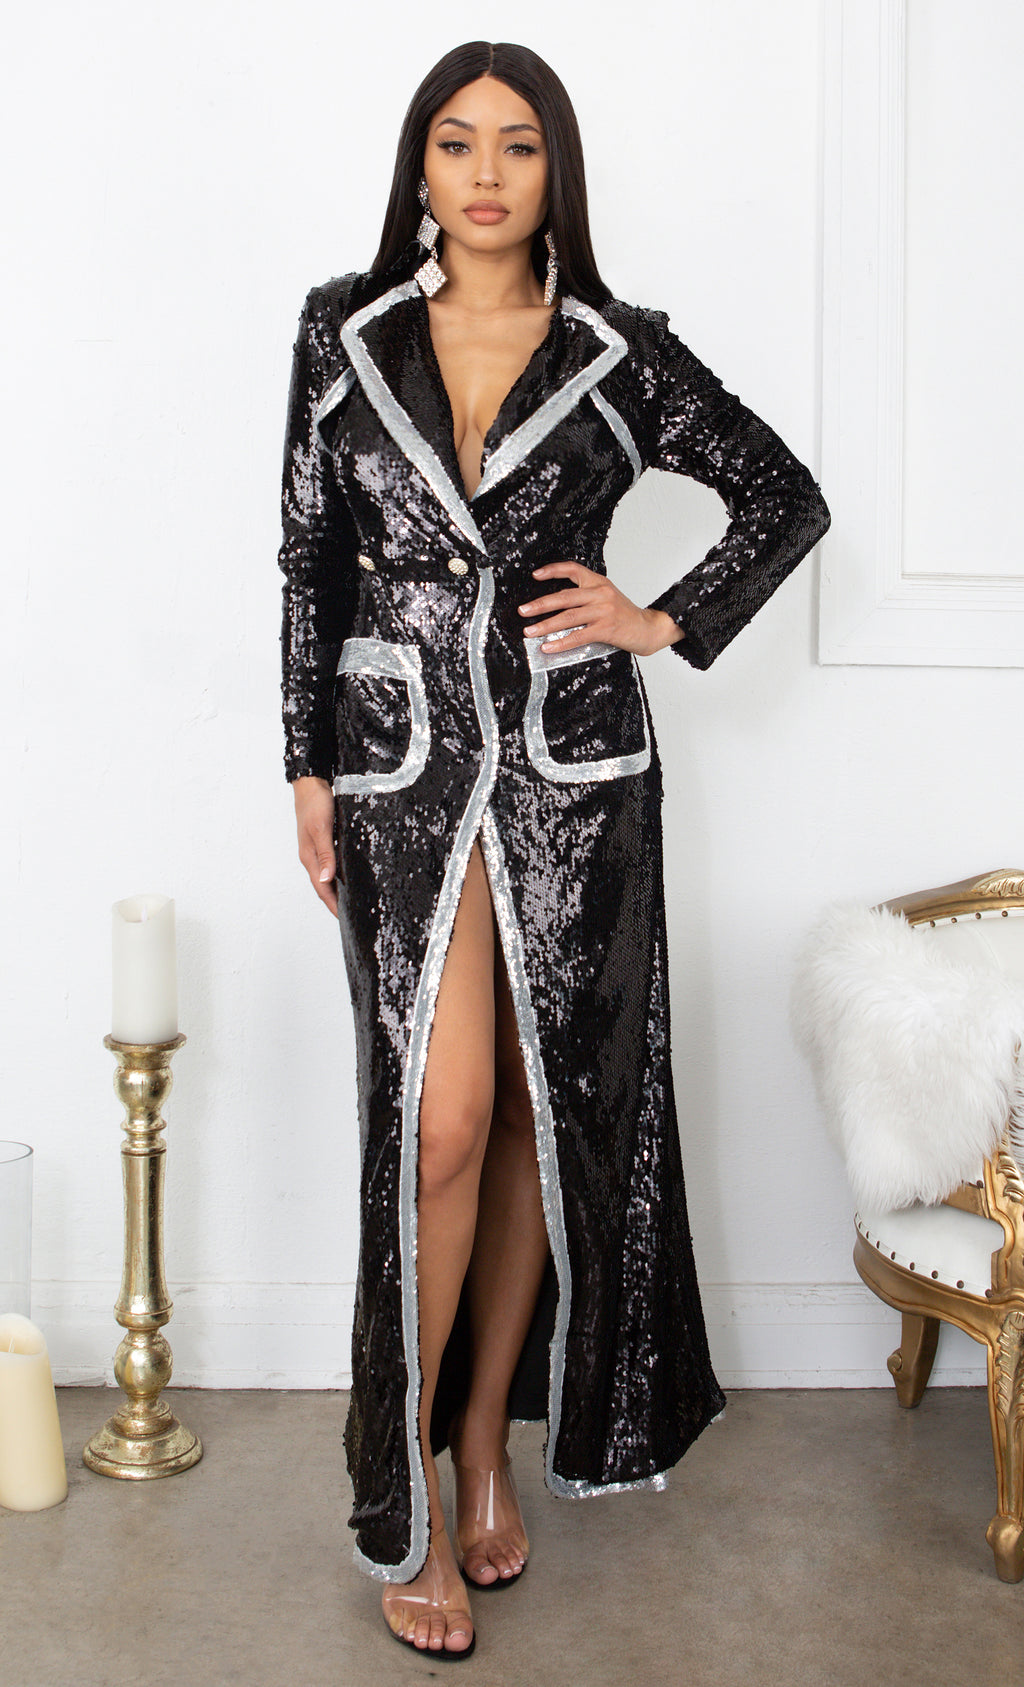 Take Charge Black Silver Sequin Long Sleeve Wrap Plunge V Neck High Slit Duster Coat Pockets Button Maxi Dress